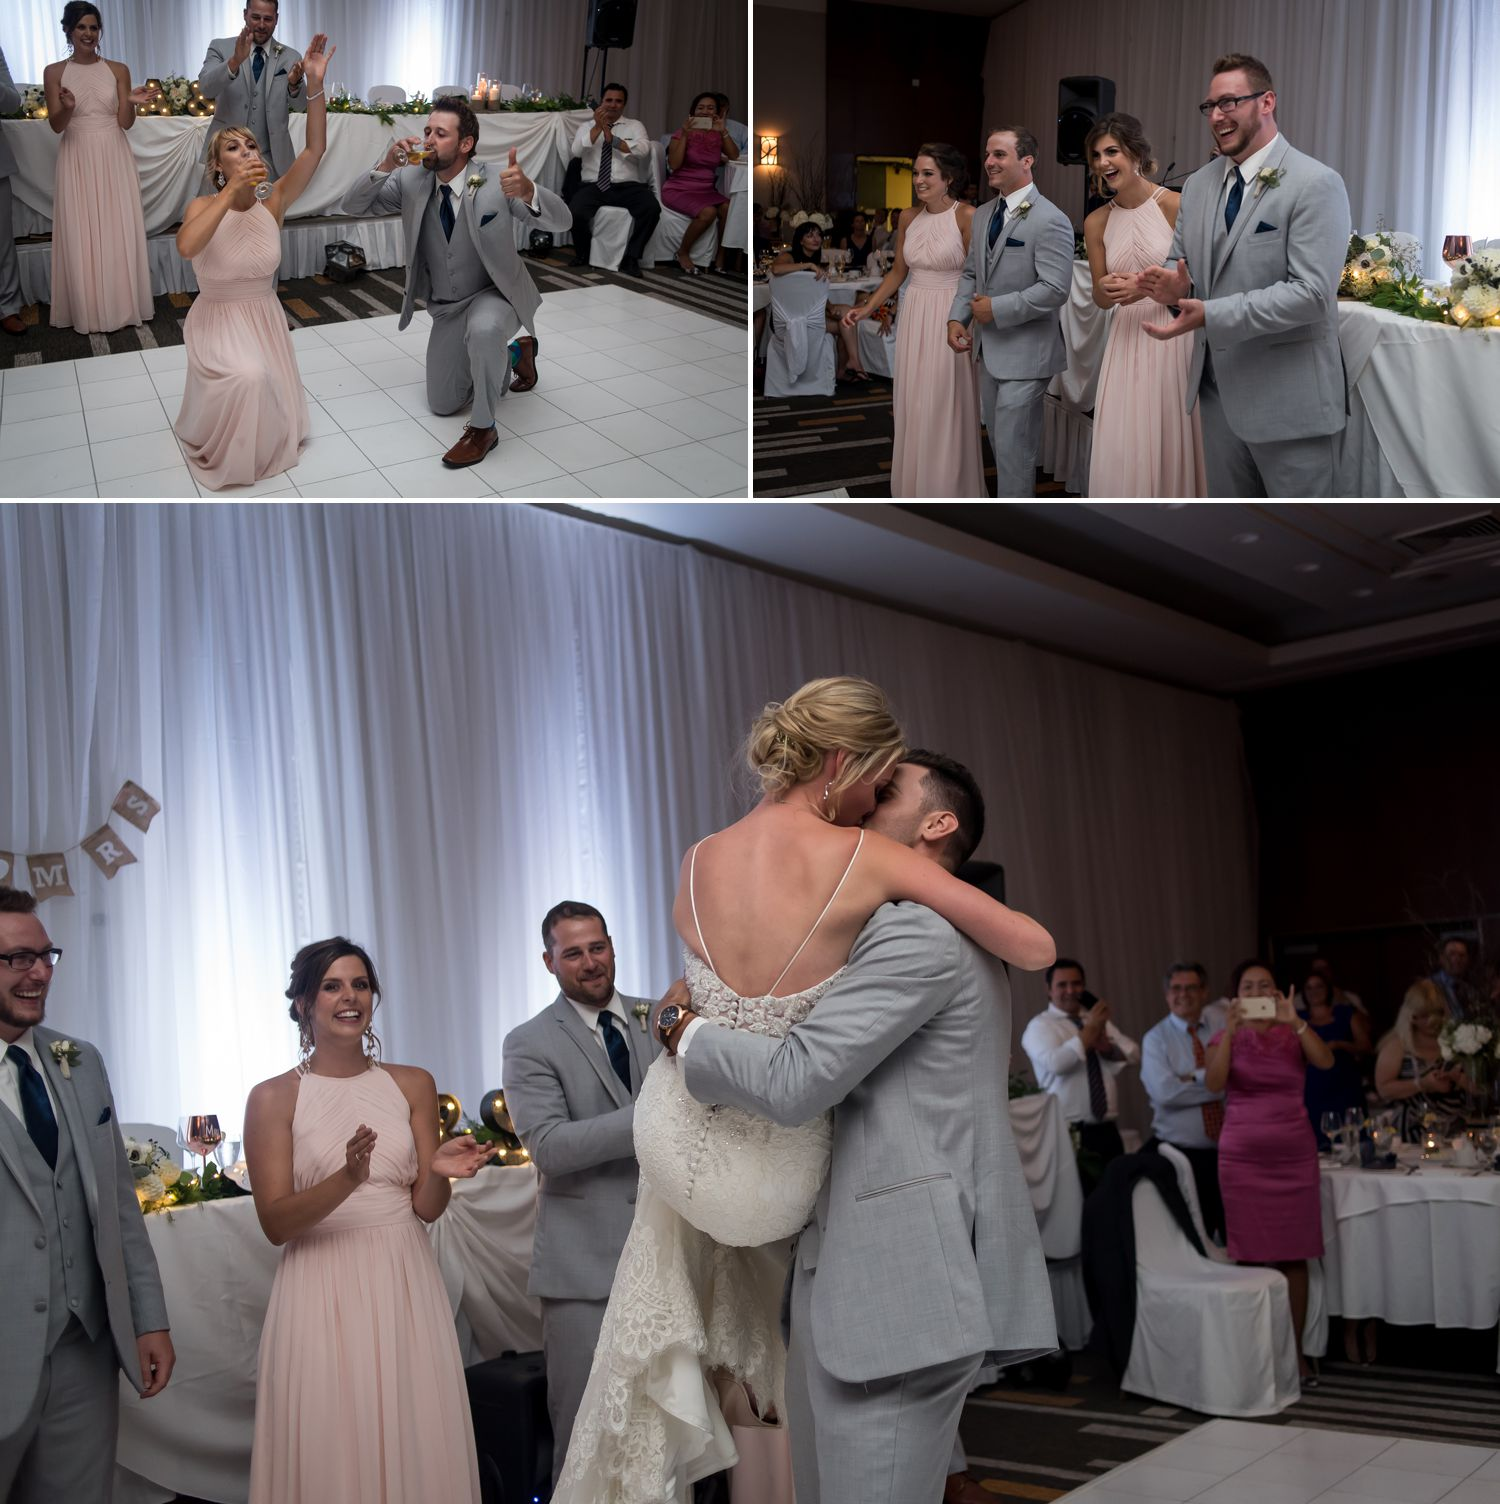 The bride and groom with their wedding party during their entrance to their wedding reception at The Delta Hotel in downtown Ottawa